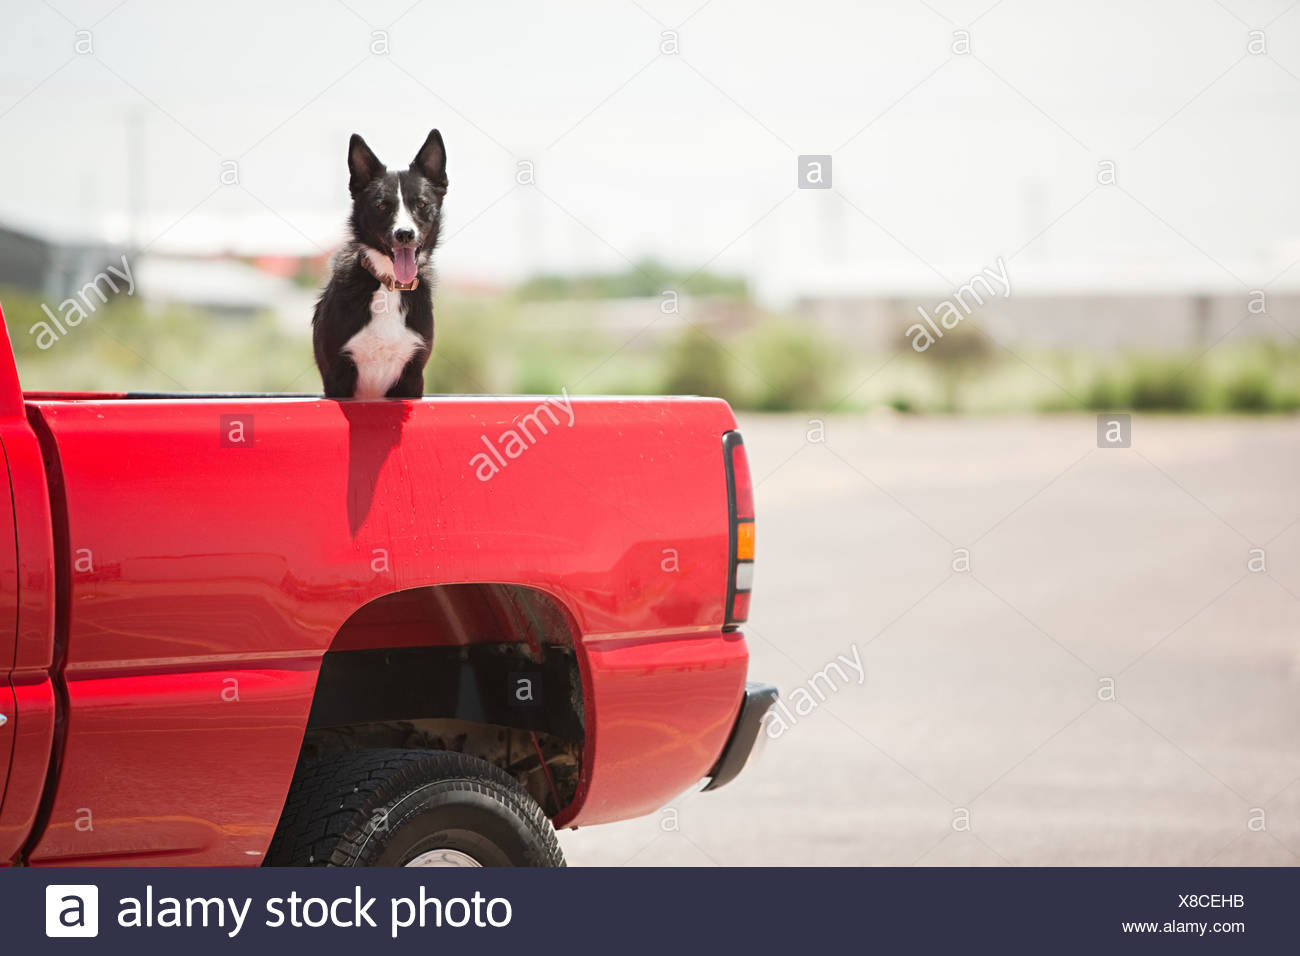 Chien en camion rouge Photo Stock